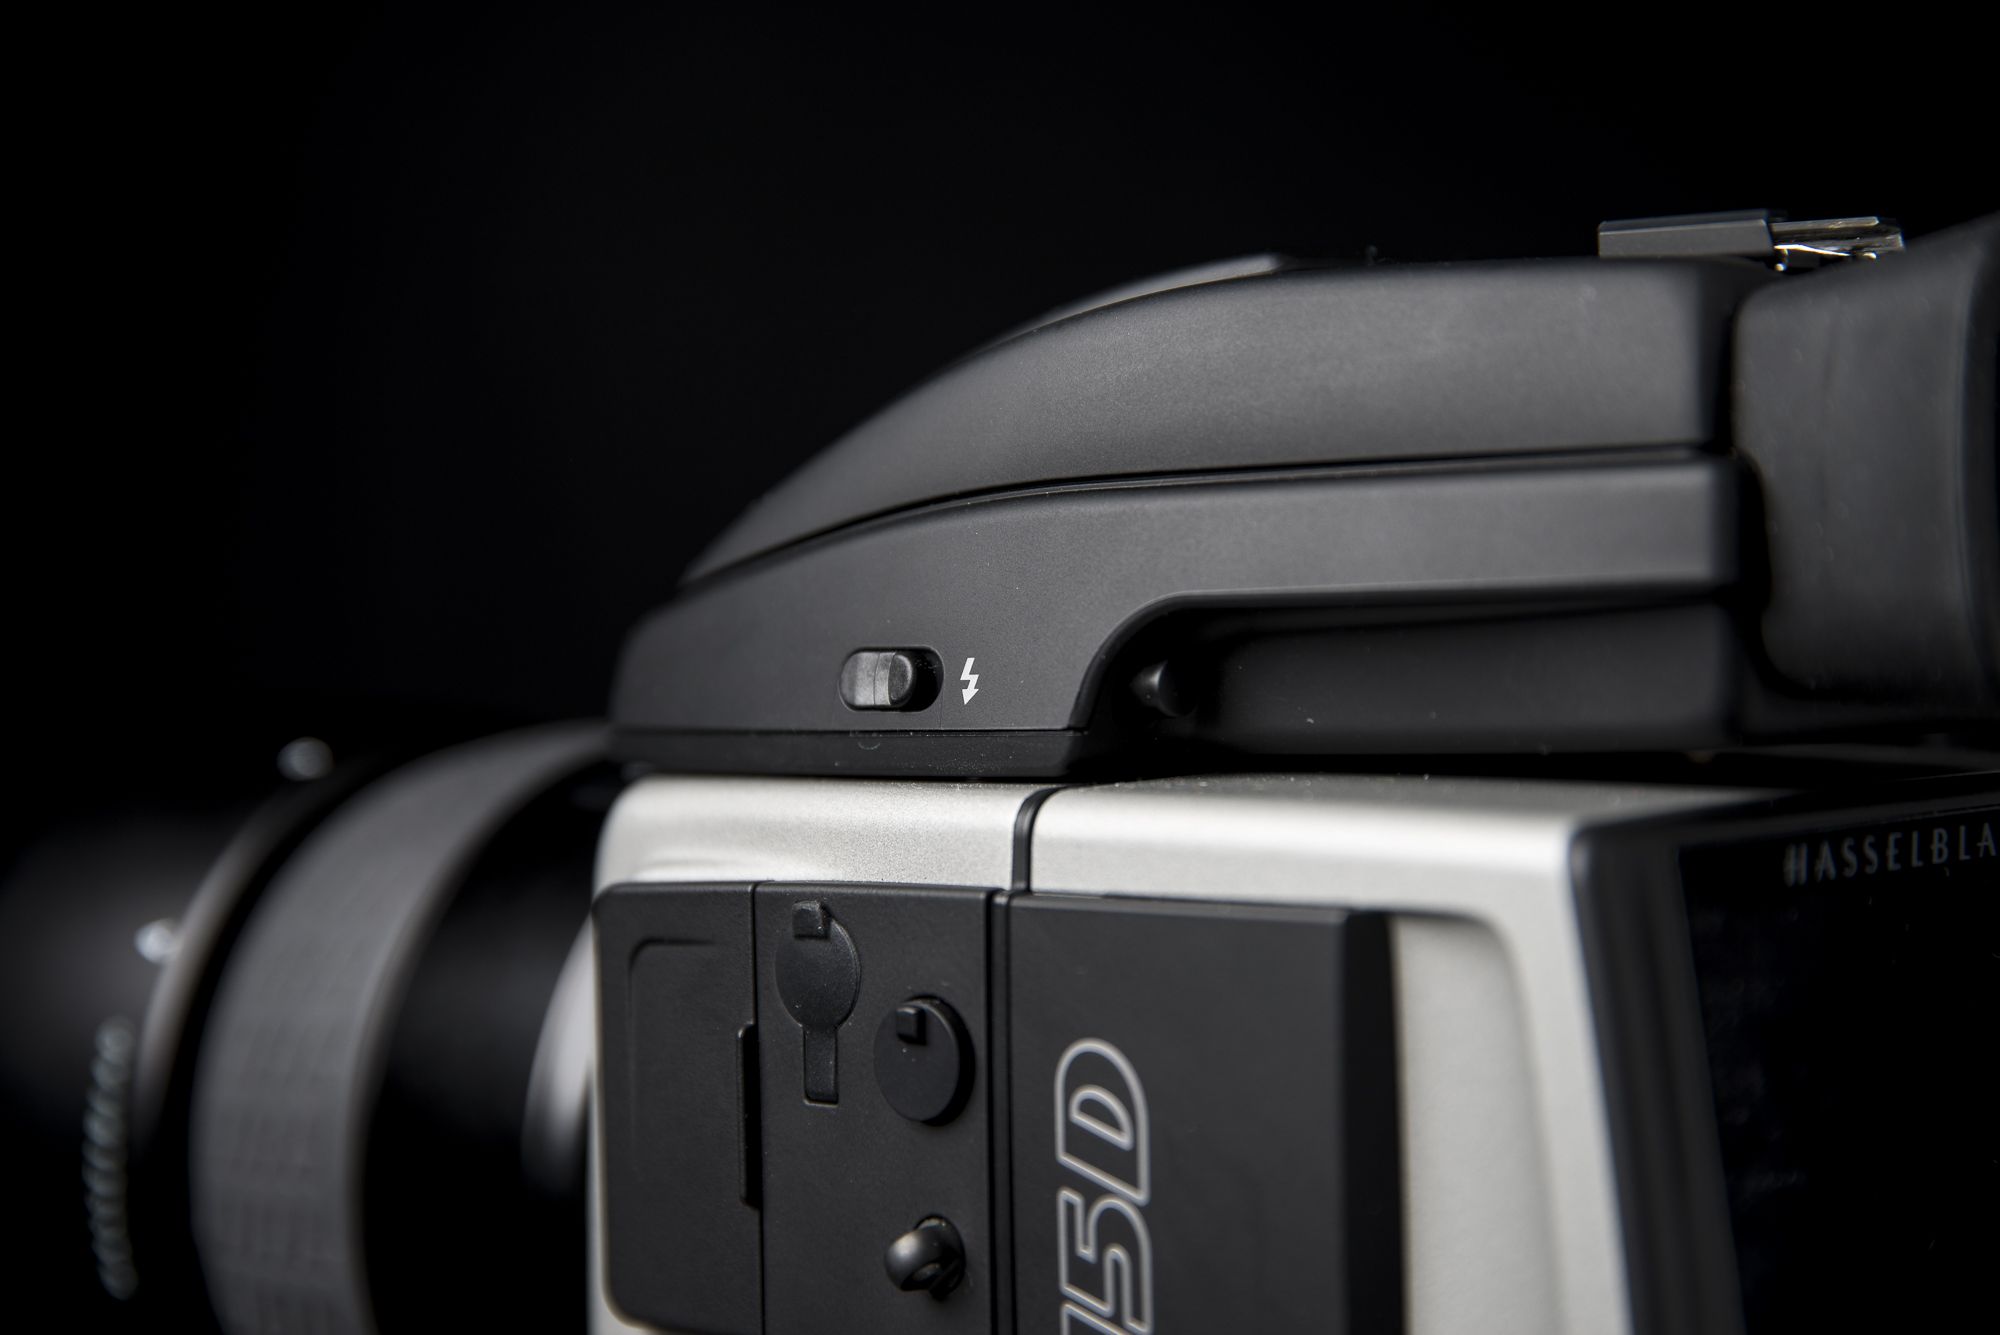 Review: Hasselblad H5D-40 — Fotostudio Ferry Knijn